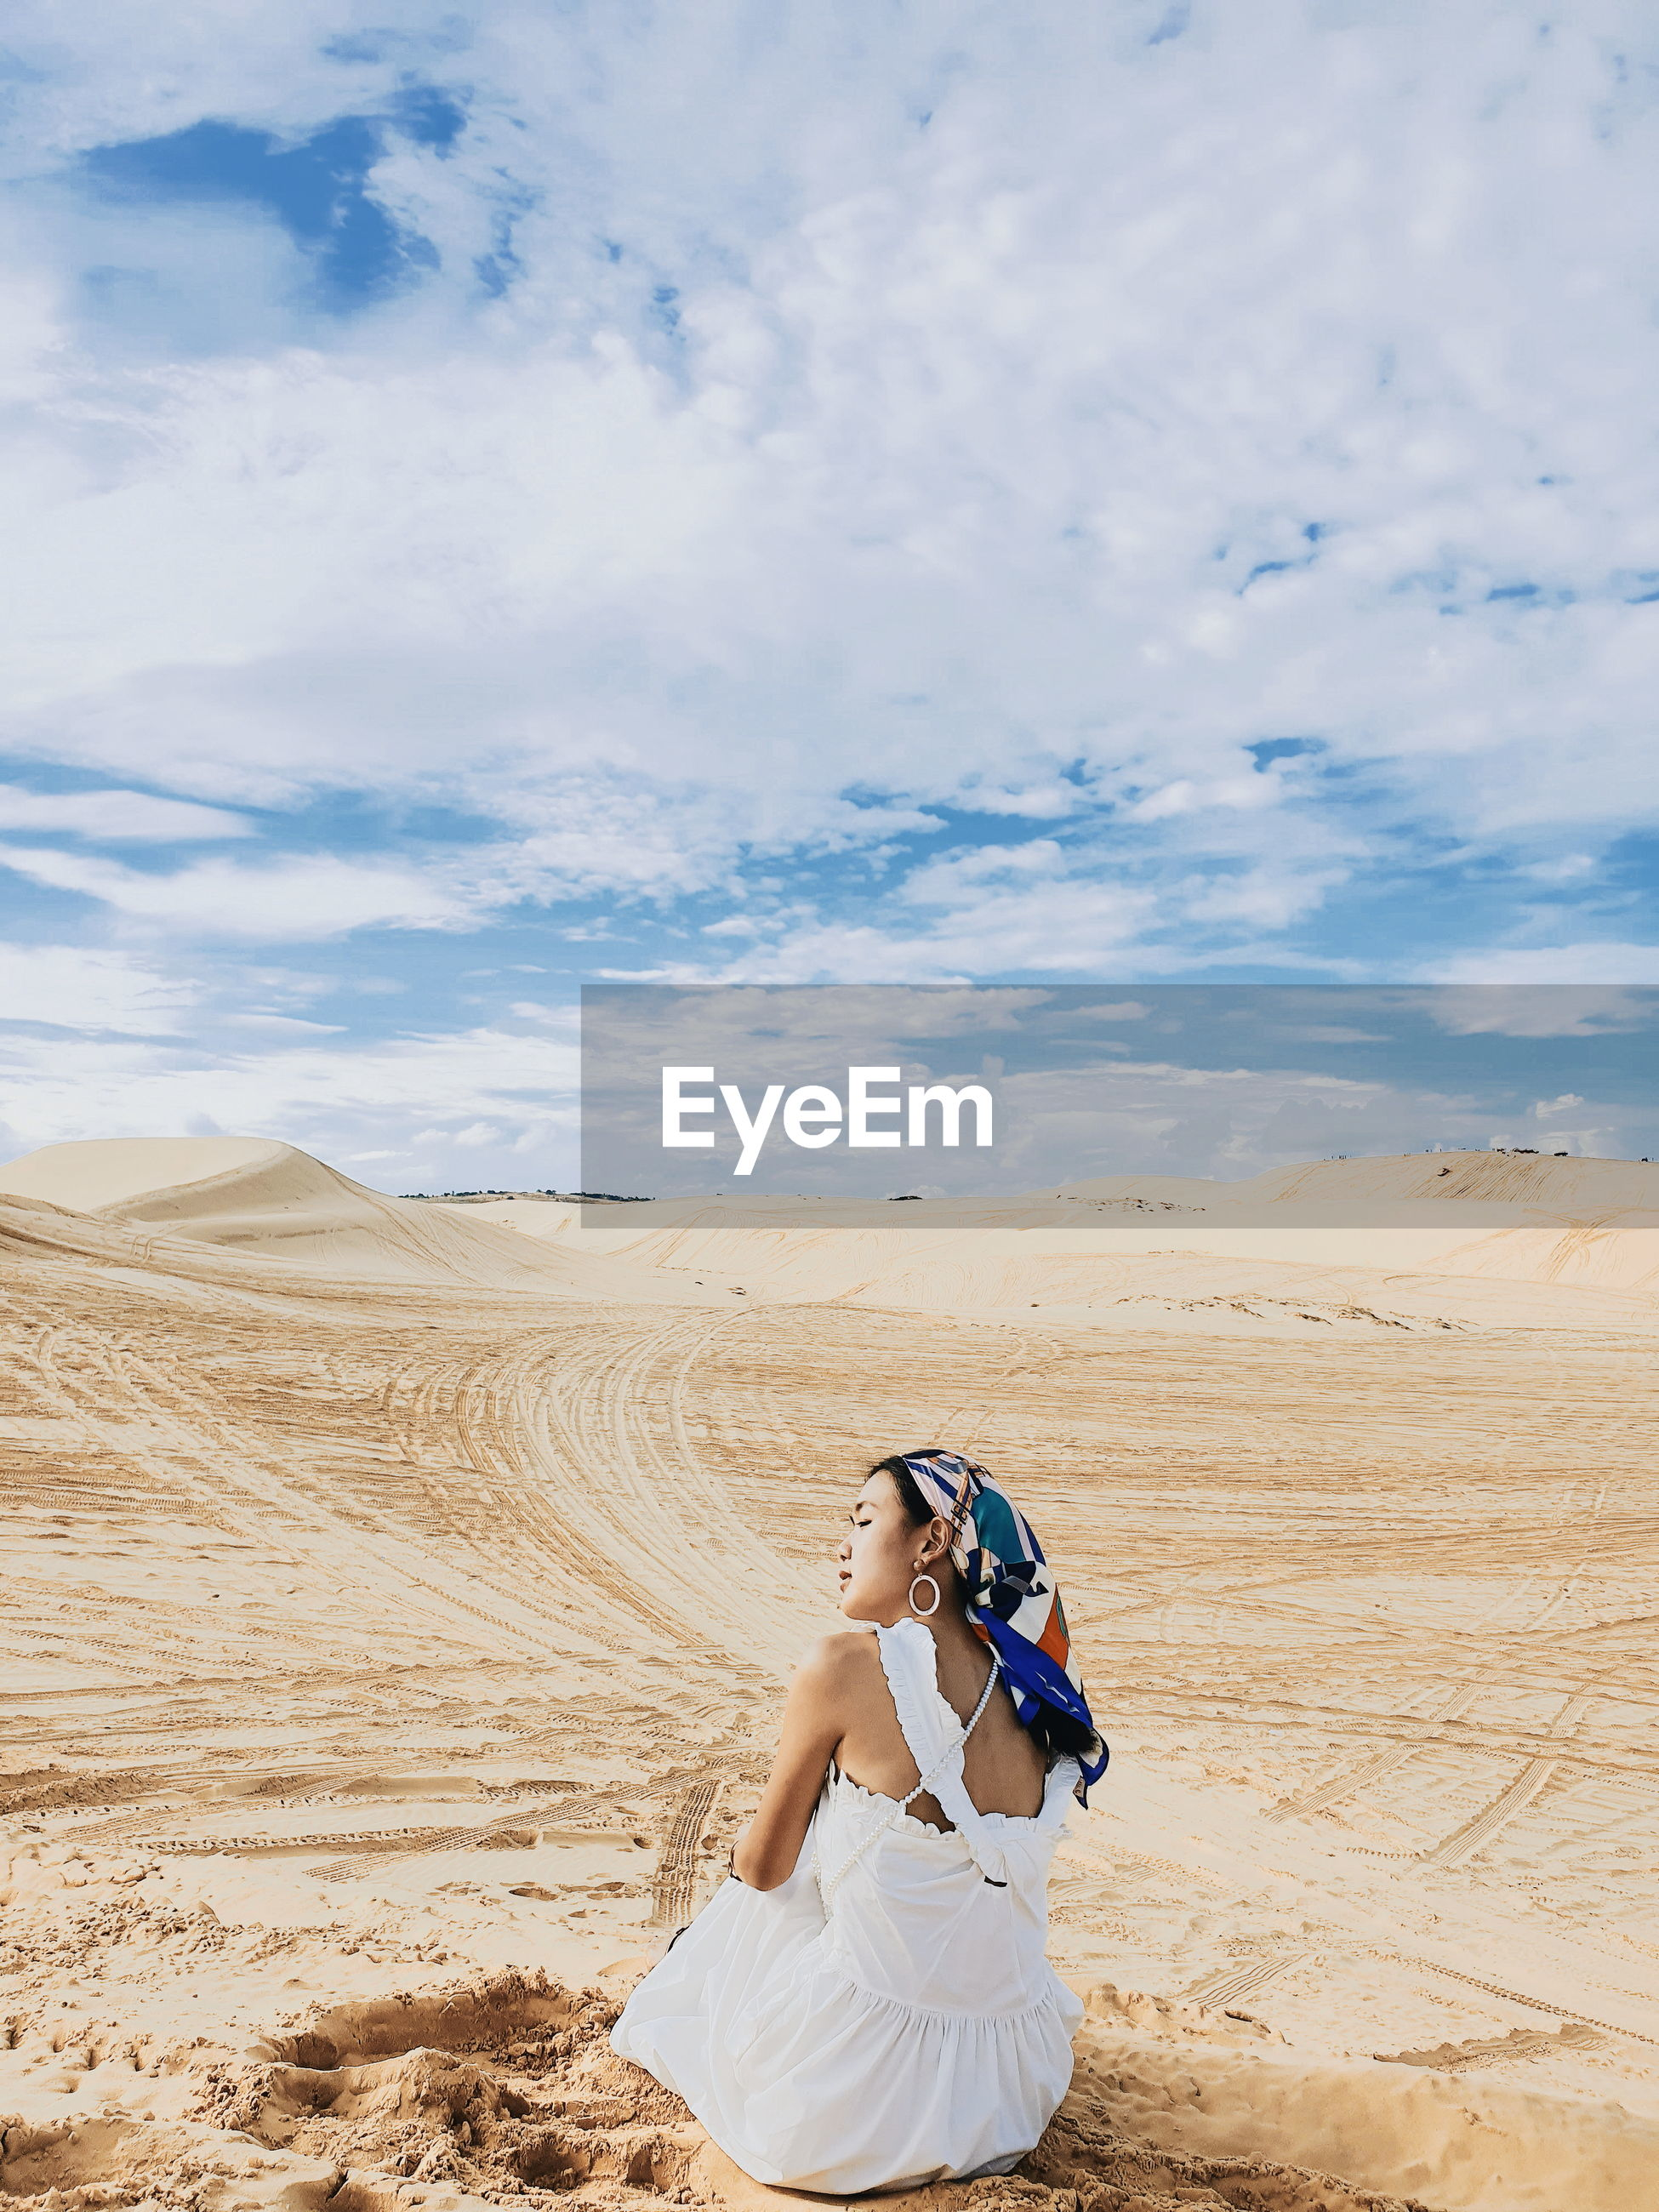 Woman photographing on desert